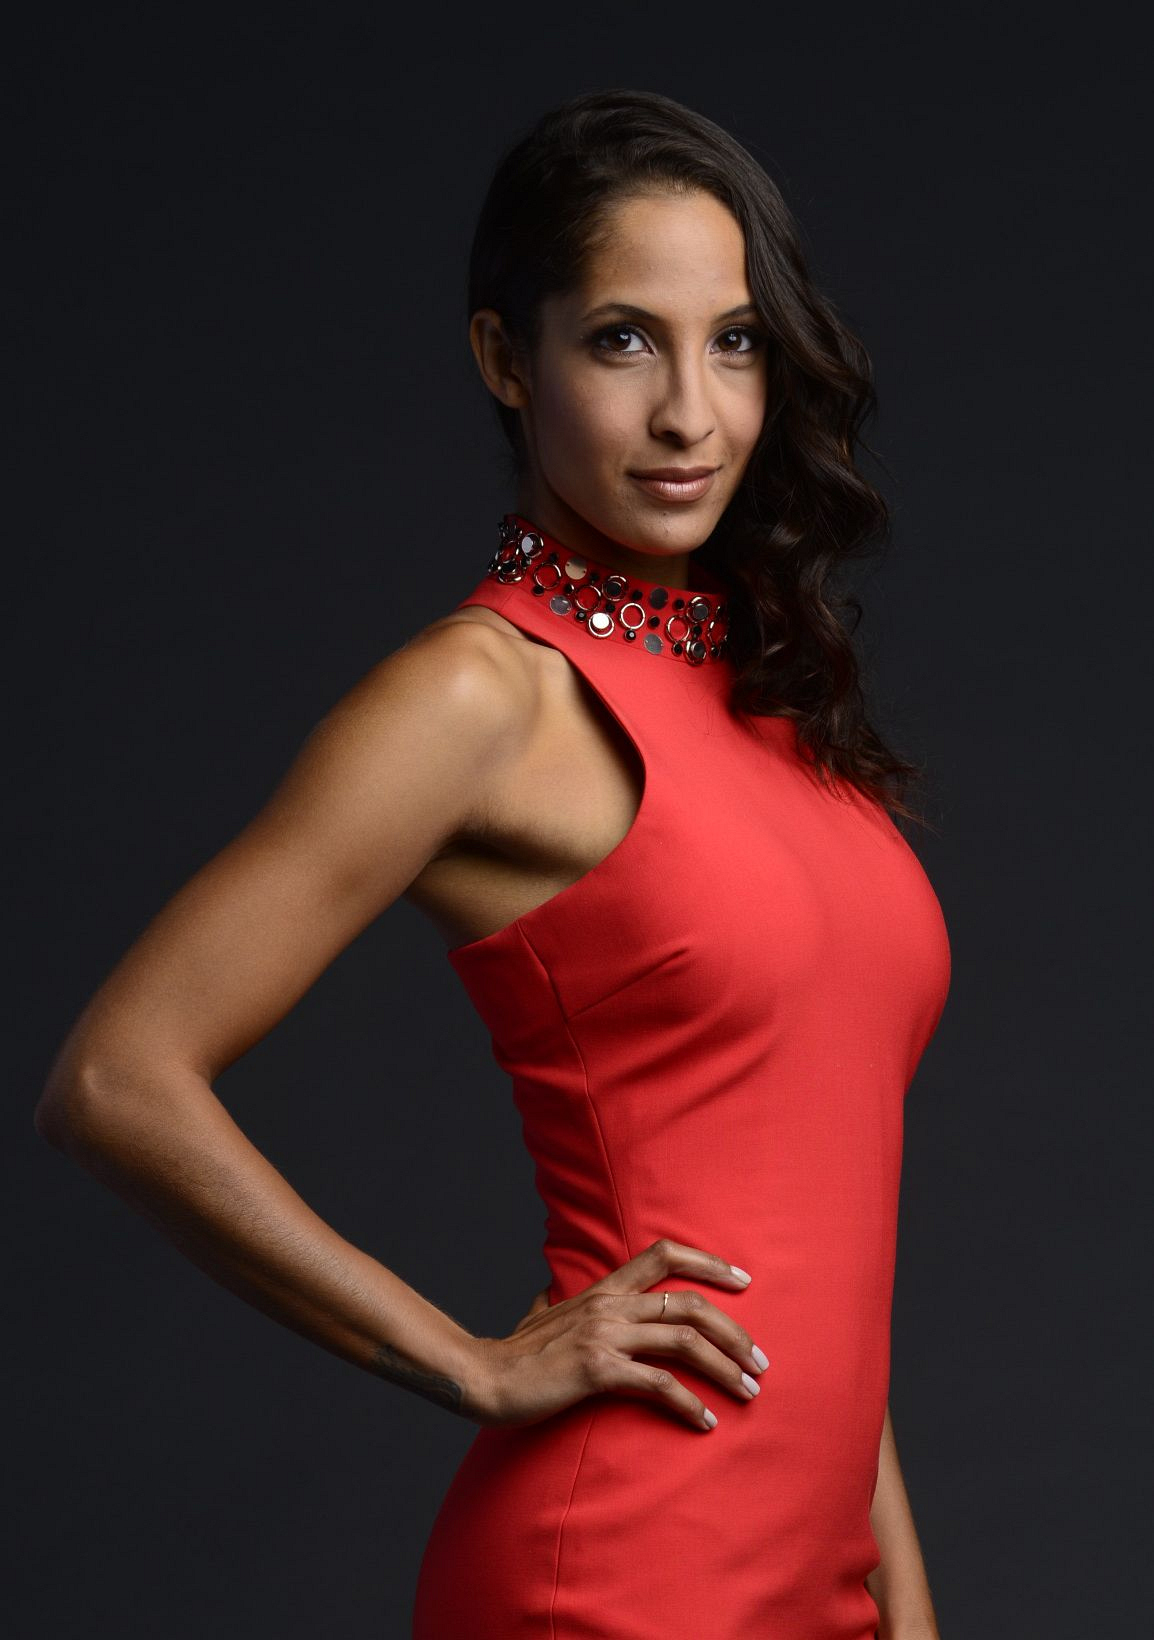 8. Christel Khalil - The Young And The Restless